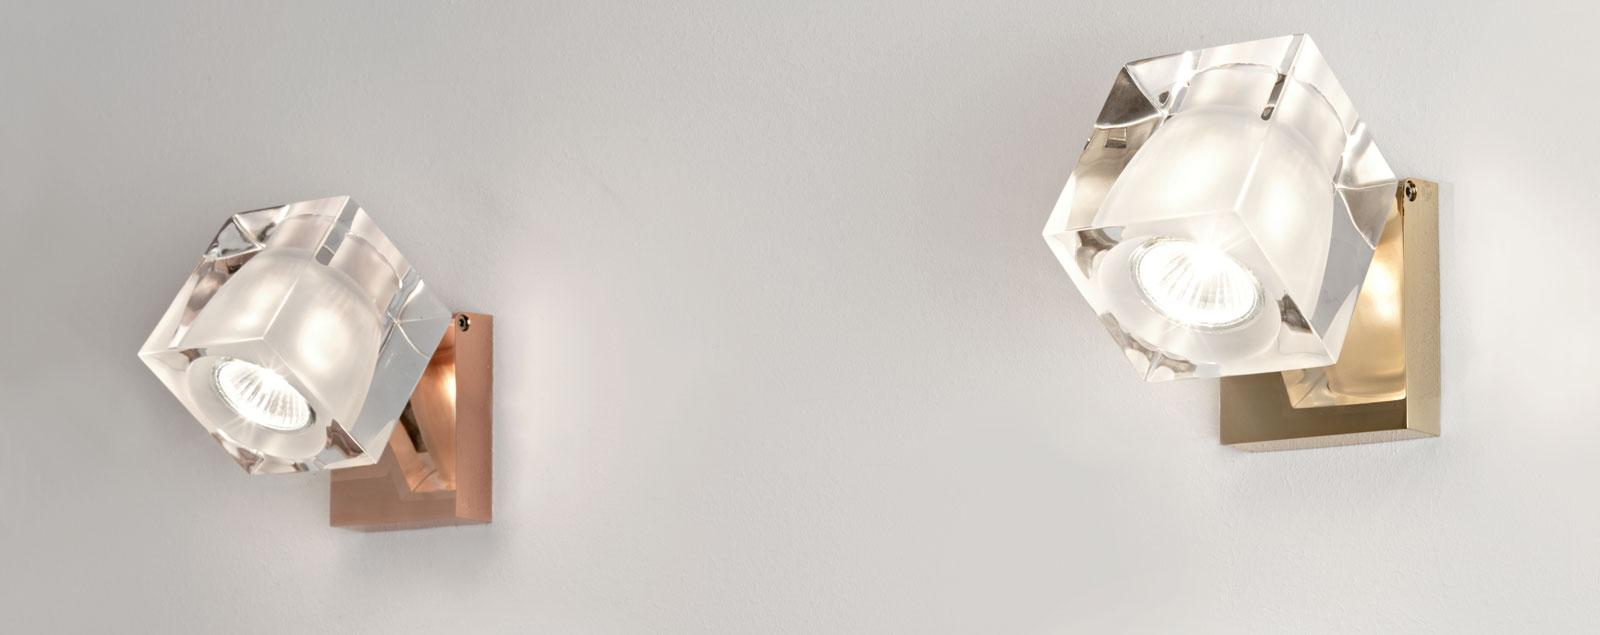 D28 Cubetto wall and ceiling - Fabbian Illuminazione